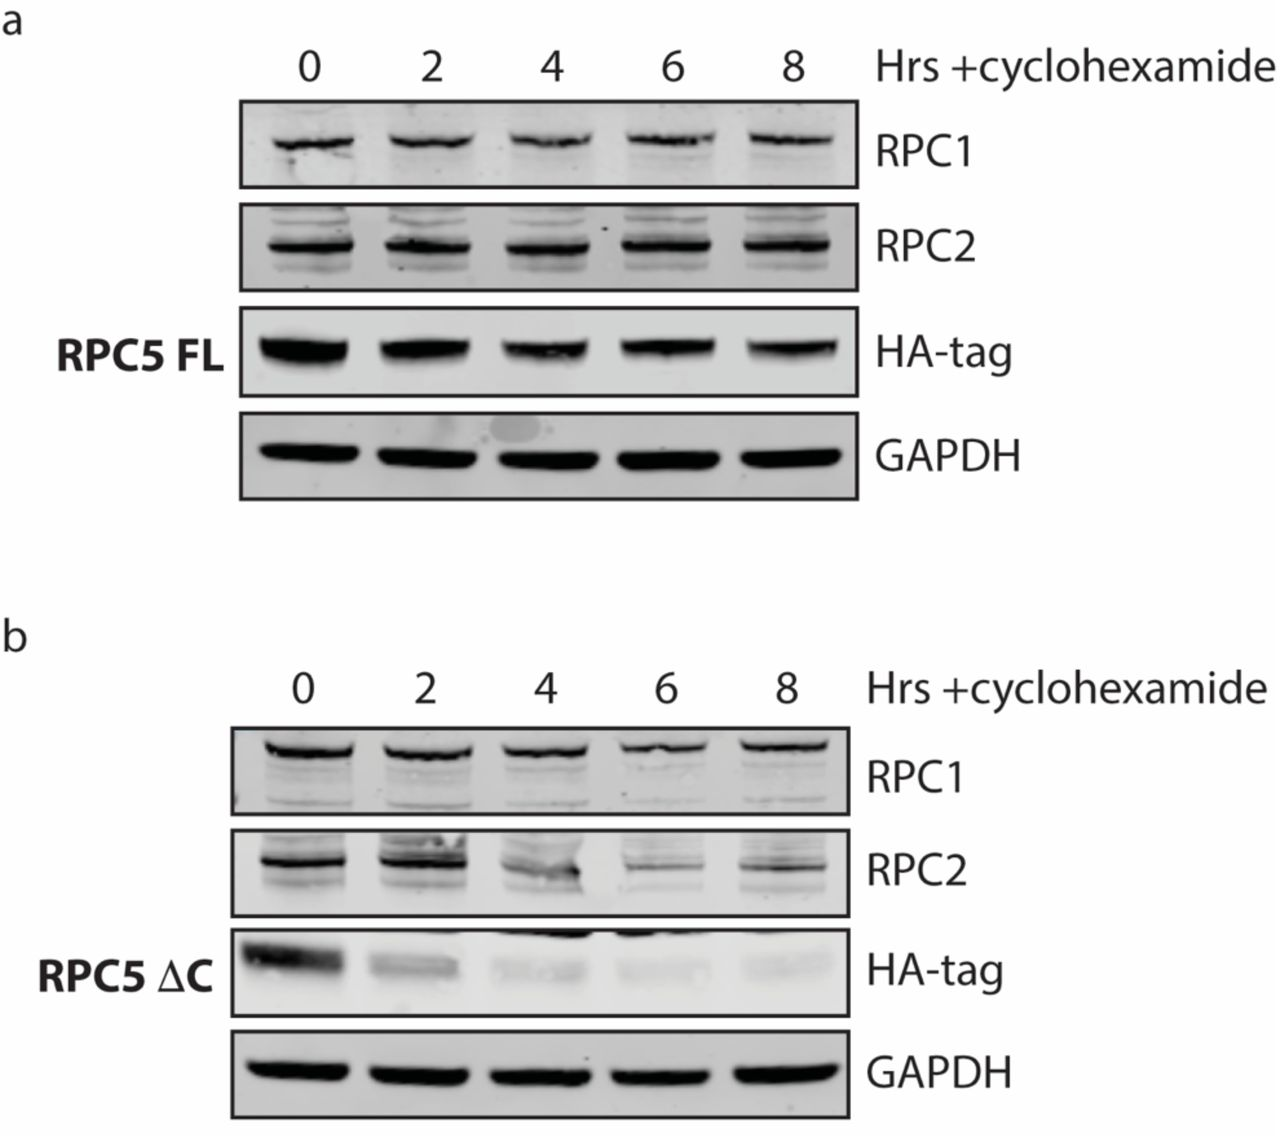 Cycloheximide chase assay investigation of RPC5 protein stability. HEK293T cells were seeded, endogenous RPC5 was knocked down via siRNA and either the FL ( a ) or ΔC ( b ) RPC5 constructs were transfected. After 24 hours, cycloheximide was added in at a concentration of 300 µ g/ml and cells lysed at the specified time points. RPC1, 2 and 5 (as shown via HA-tag antibody) levels were probed by western blot.